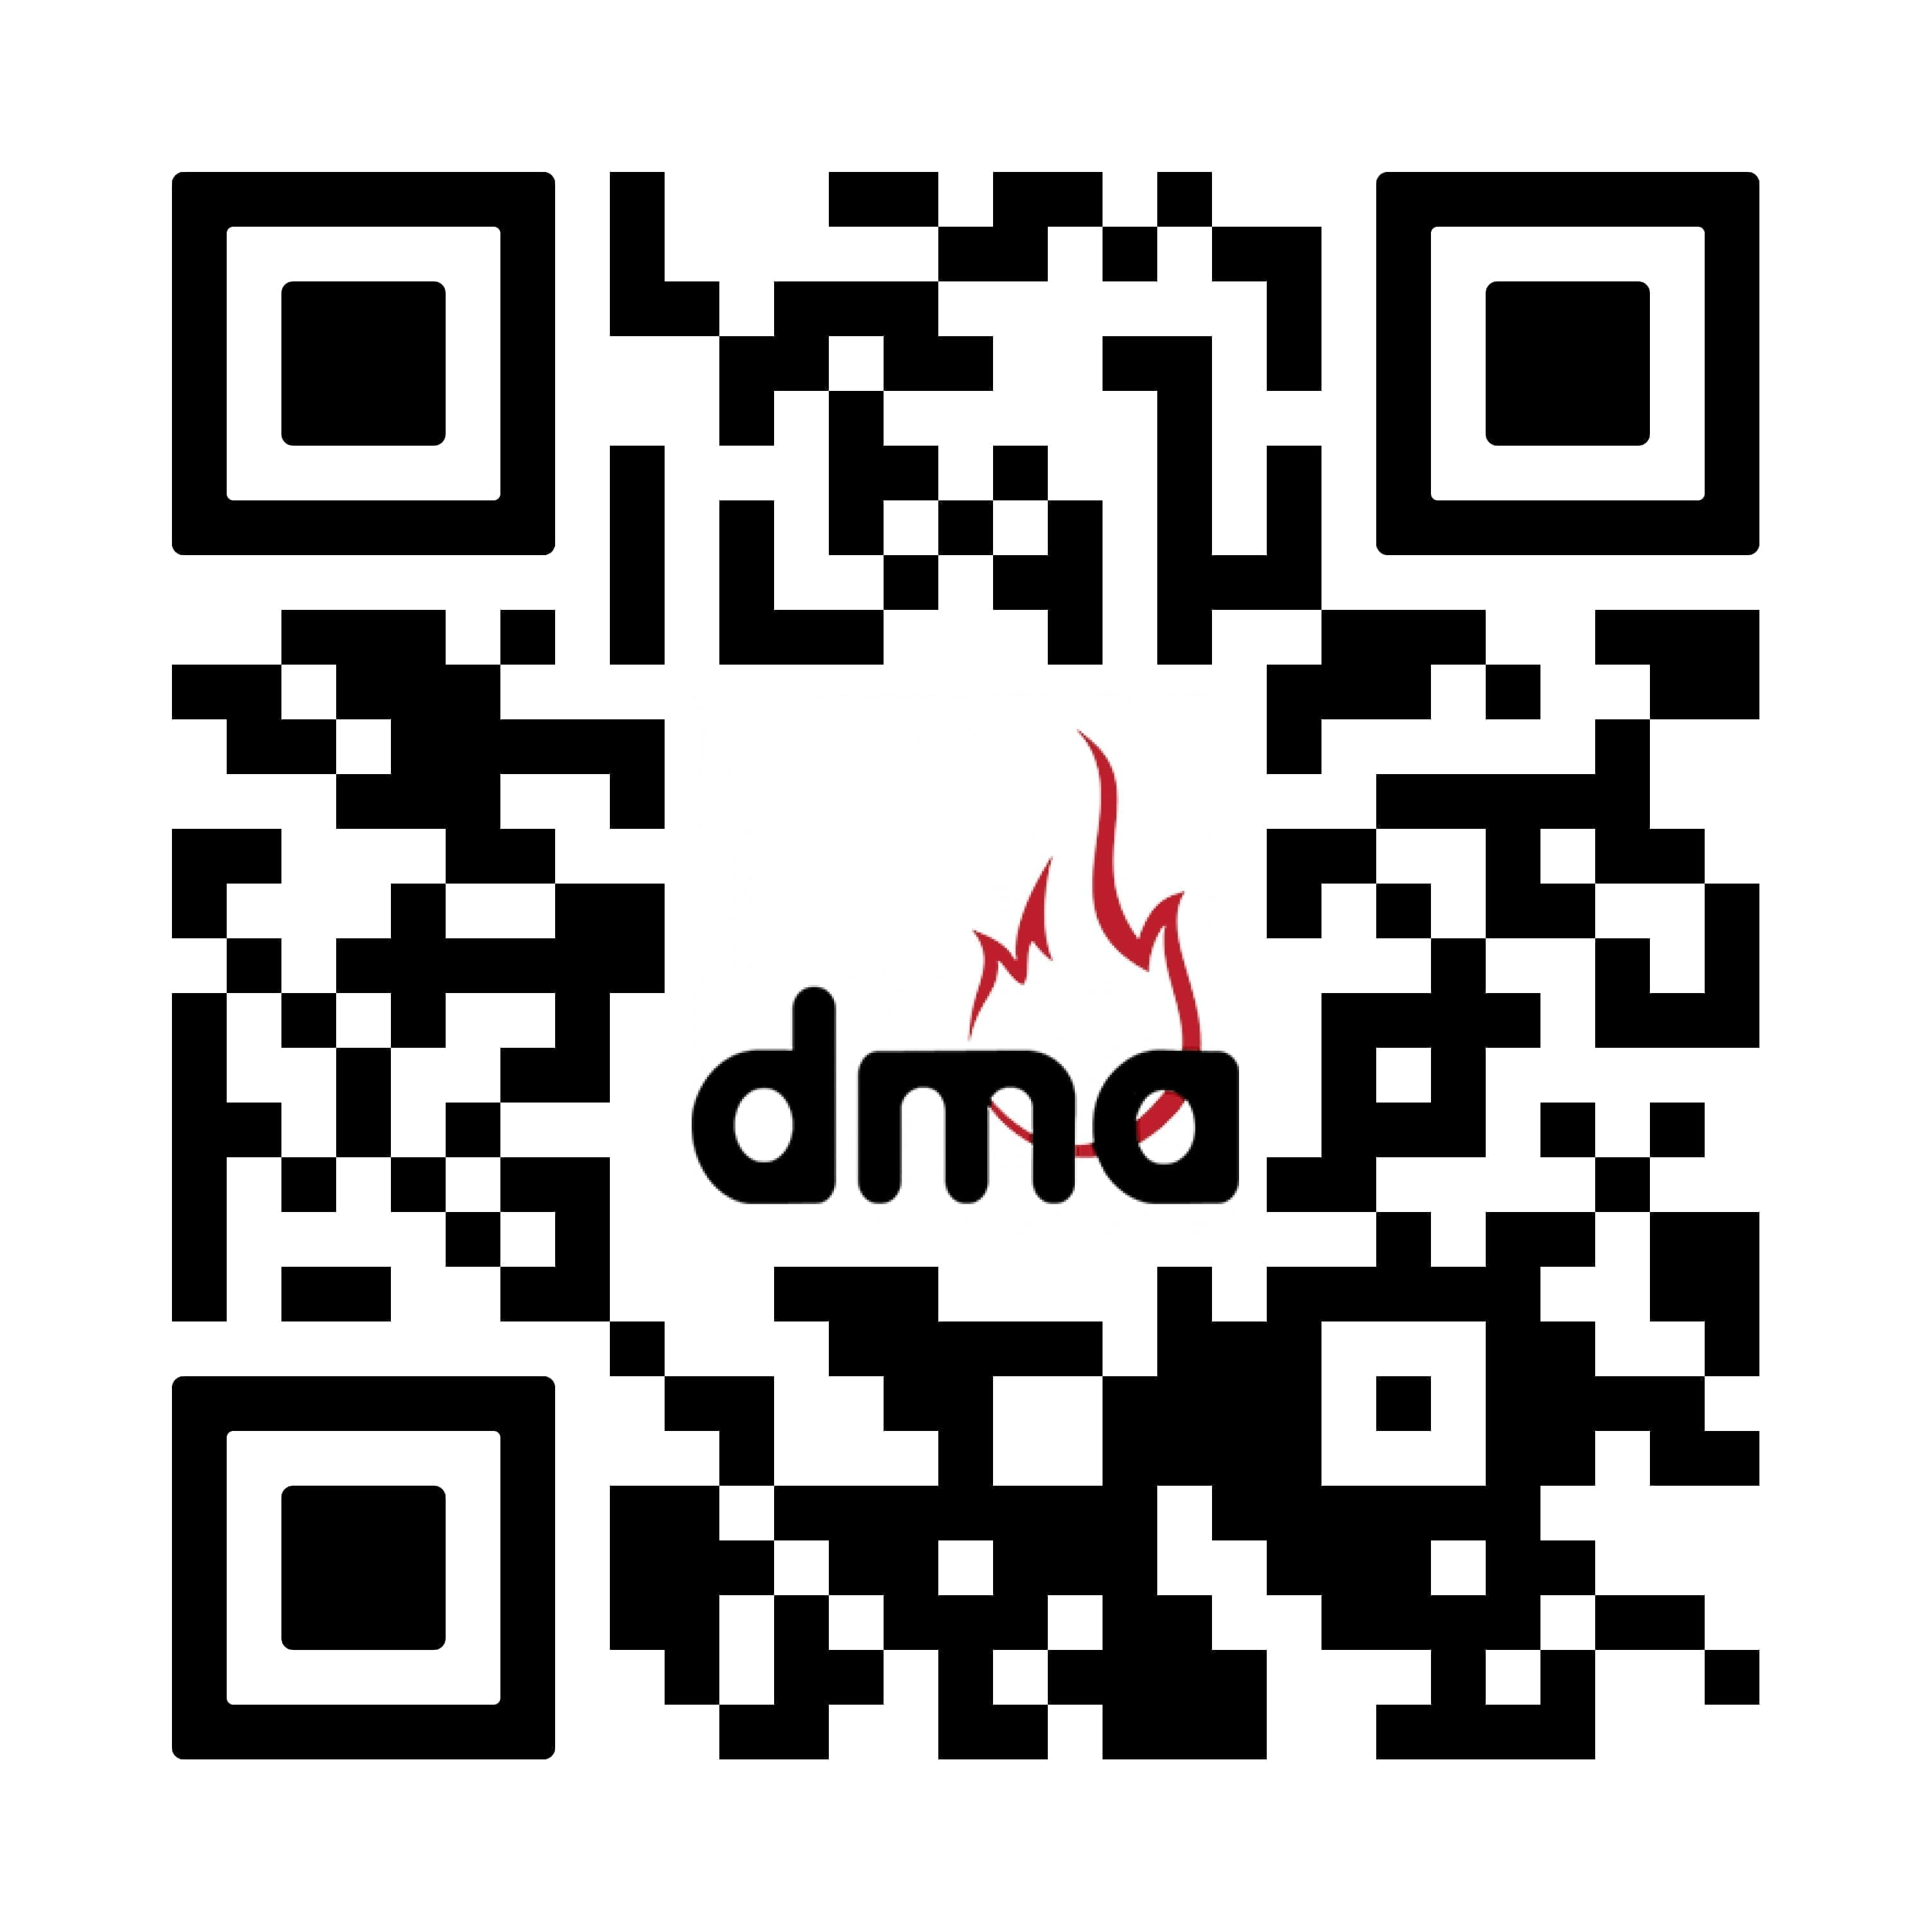 QR code to join the DMA Youth Expo